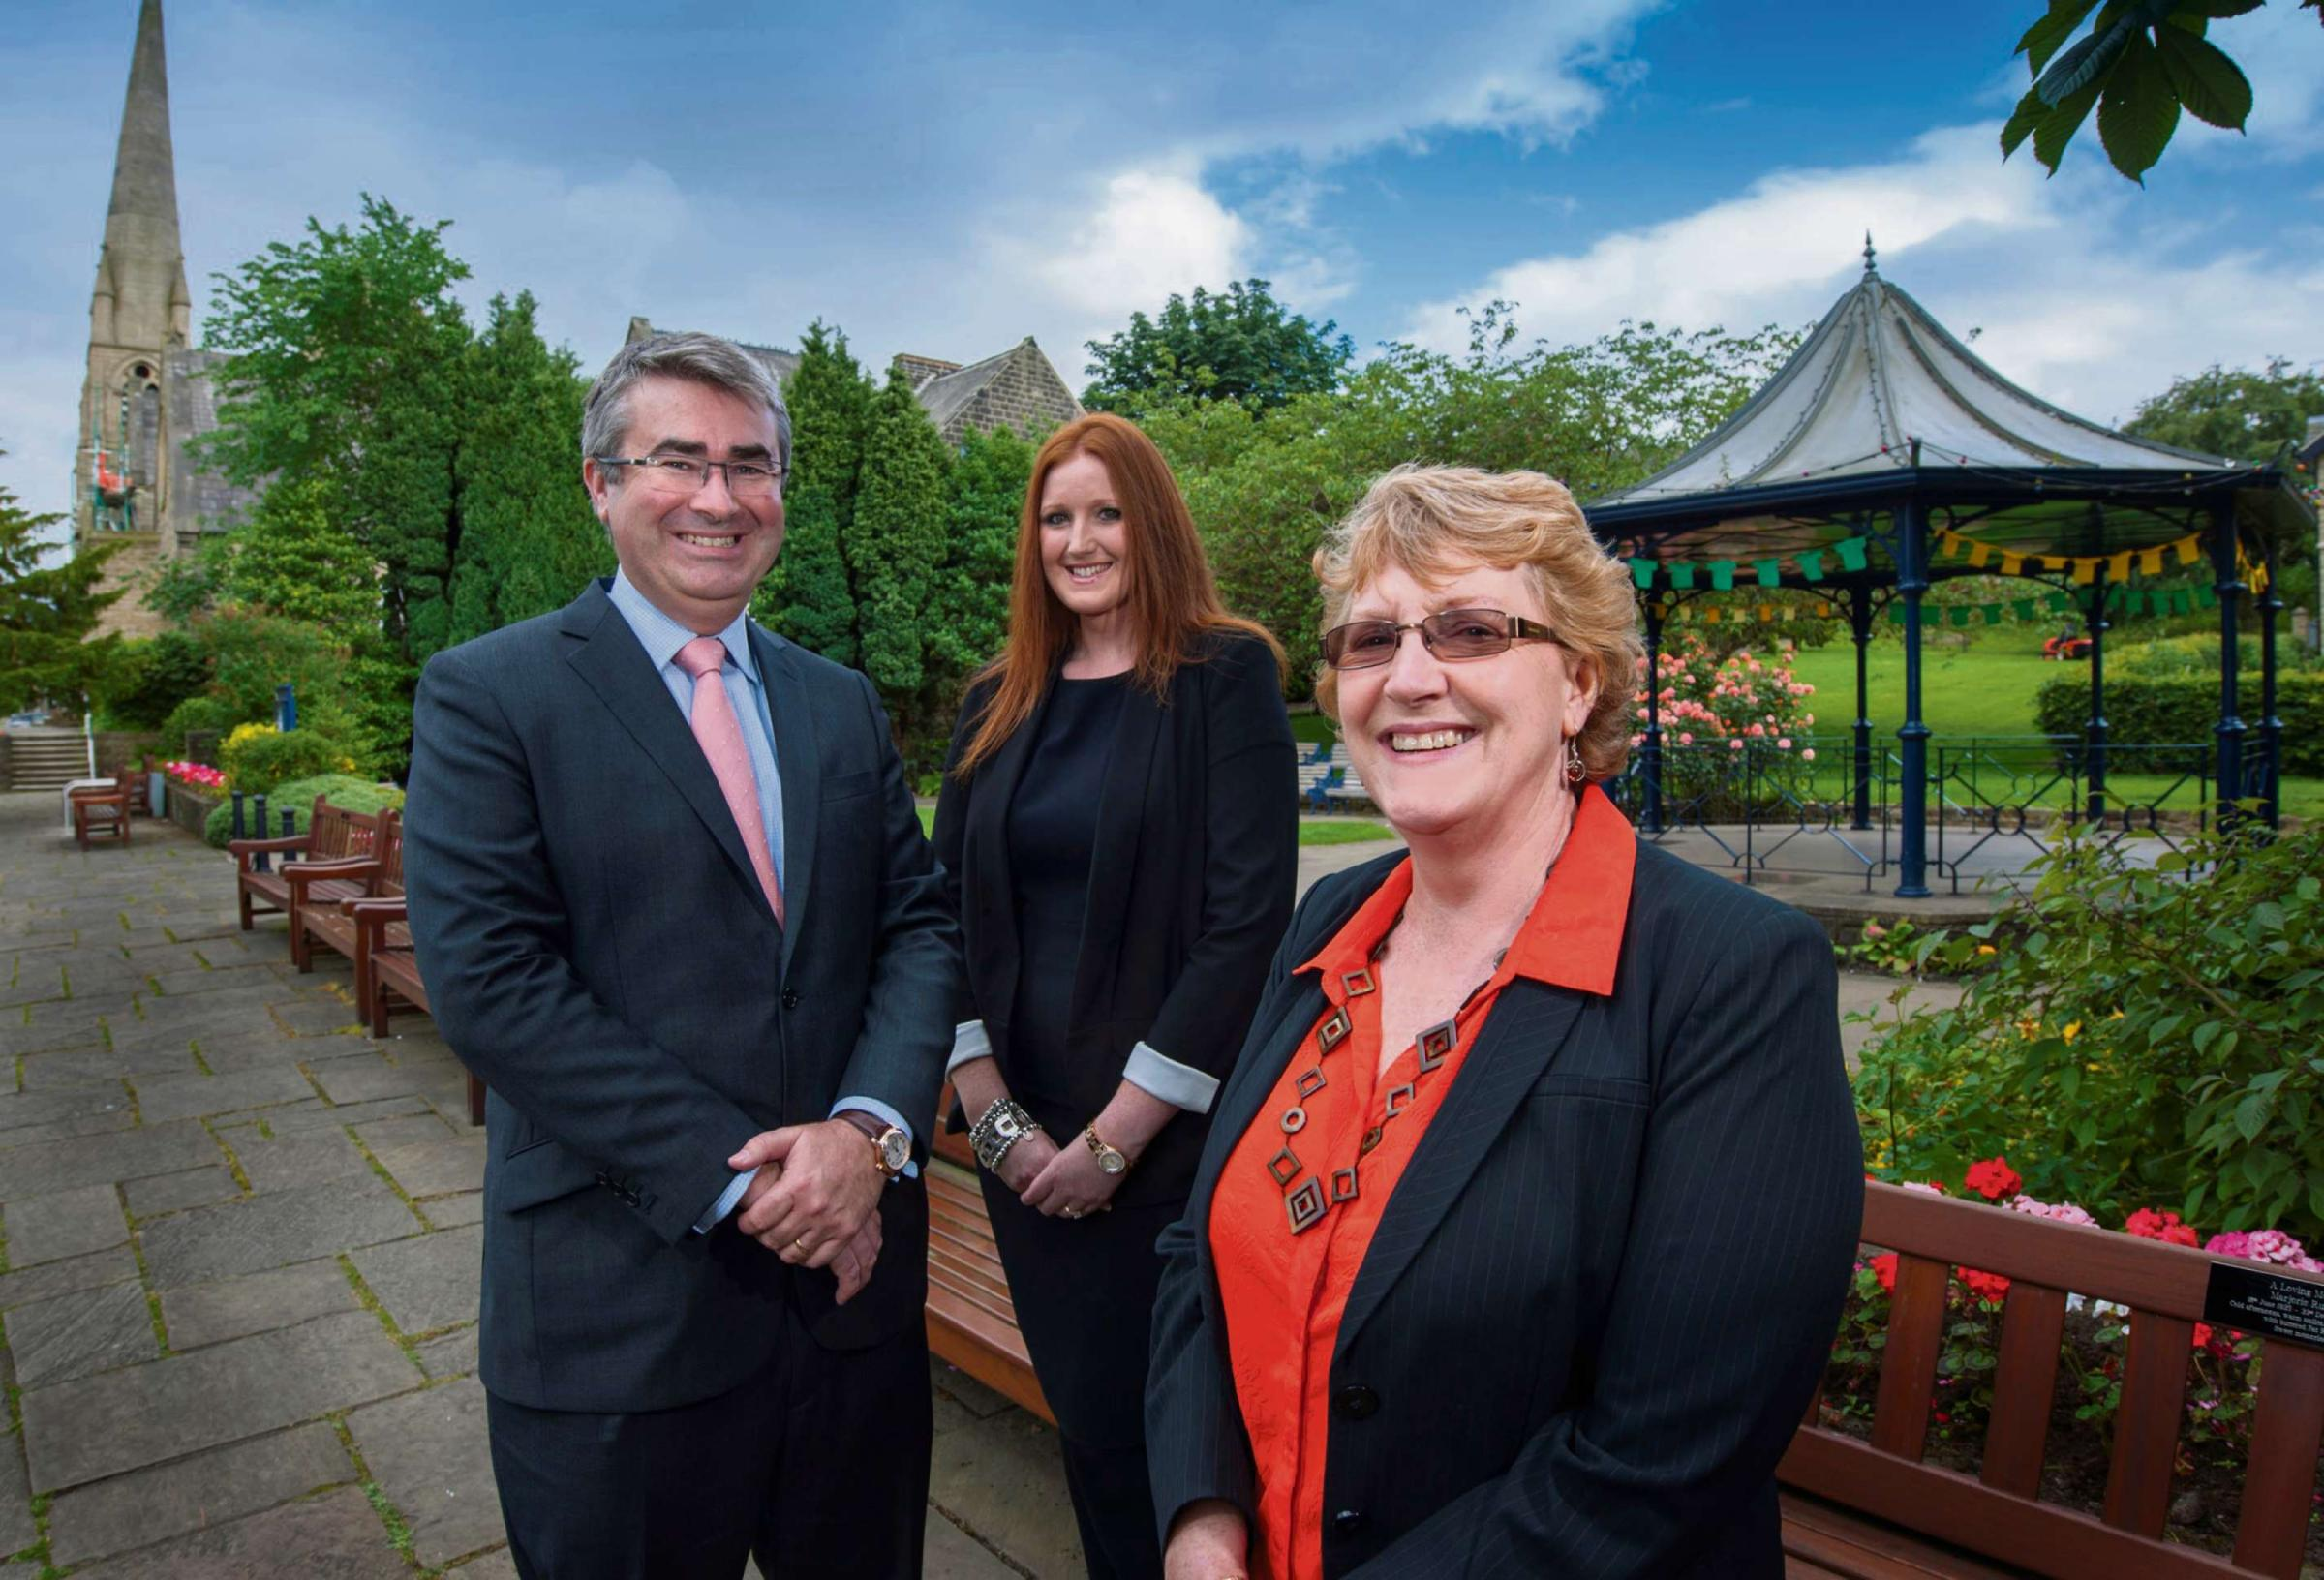 OPEN FOR BUSINESS: Pictured (L to R) with Newtons Solicitors new Ilkley office in the background are joint founder and managing director, Chris N